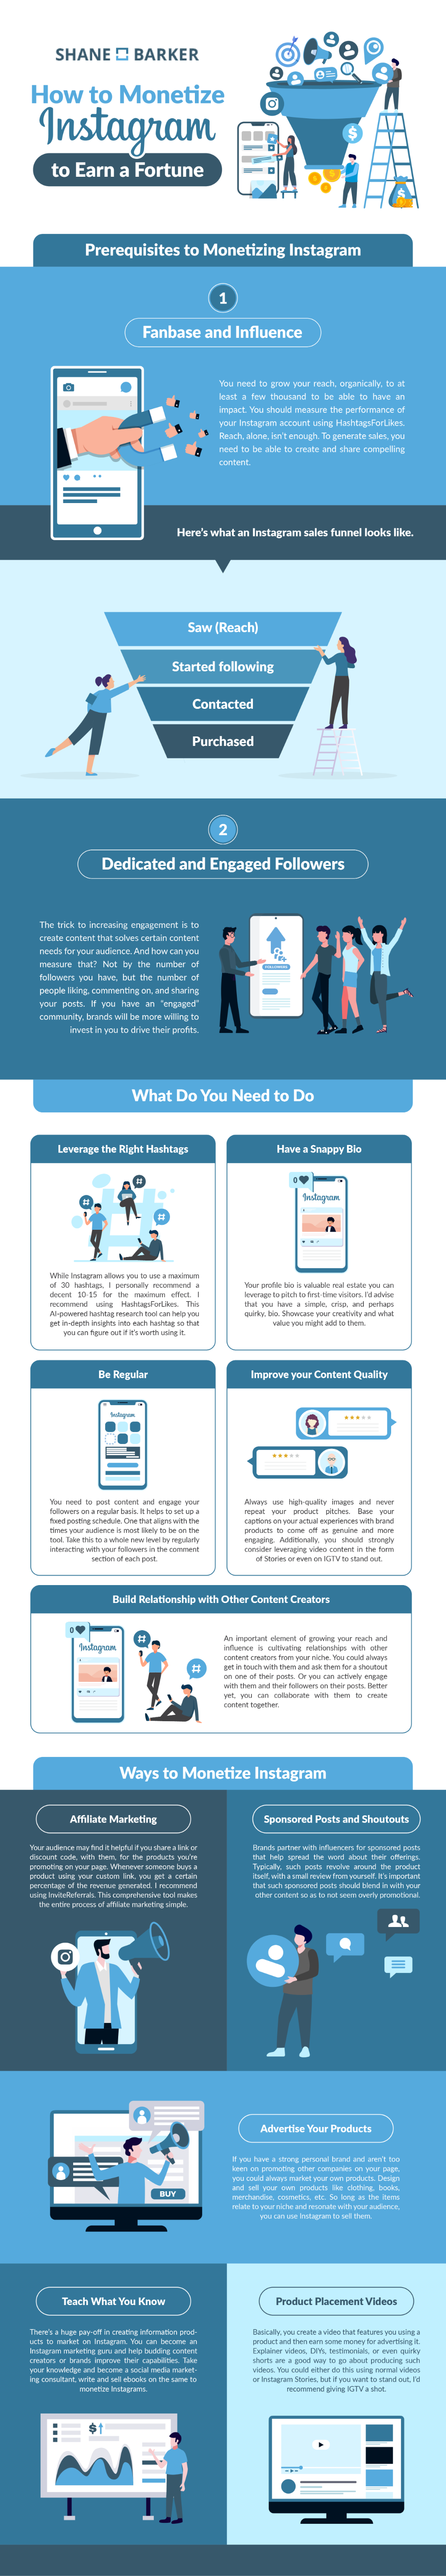 The 5 Most Popular Ways To Make Money On Instagram In 2020 Monetizing Instagram Instagram Infographic Infographic